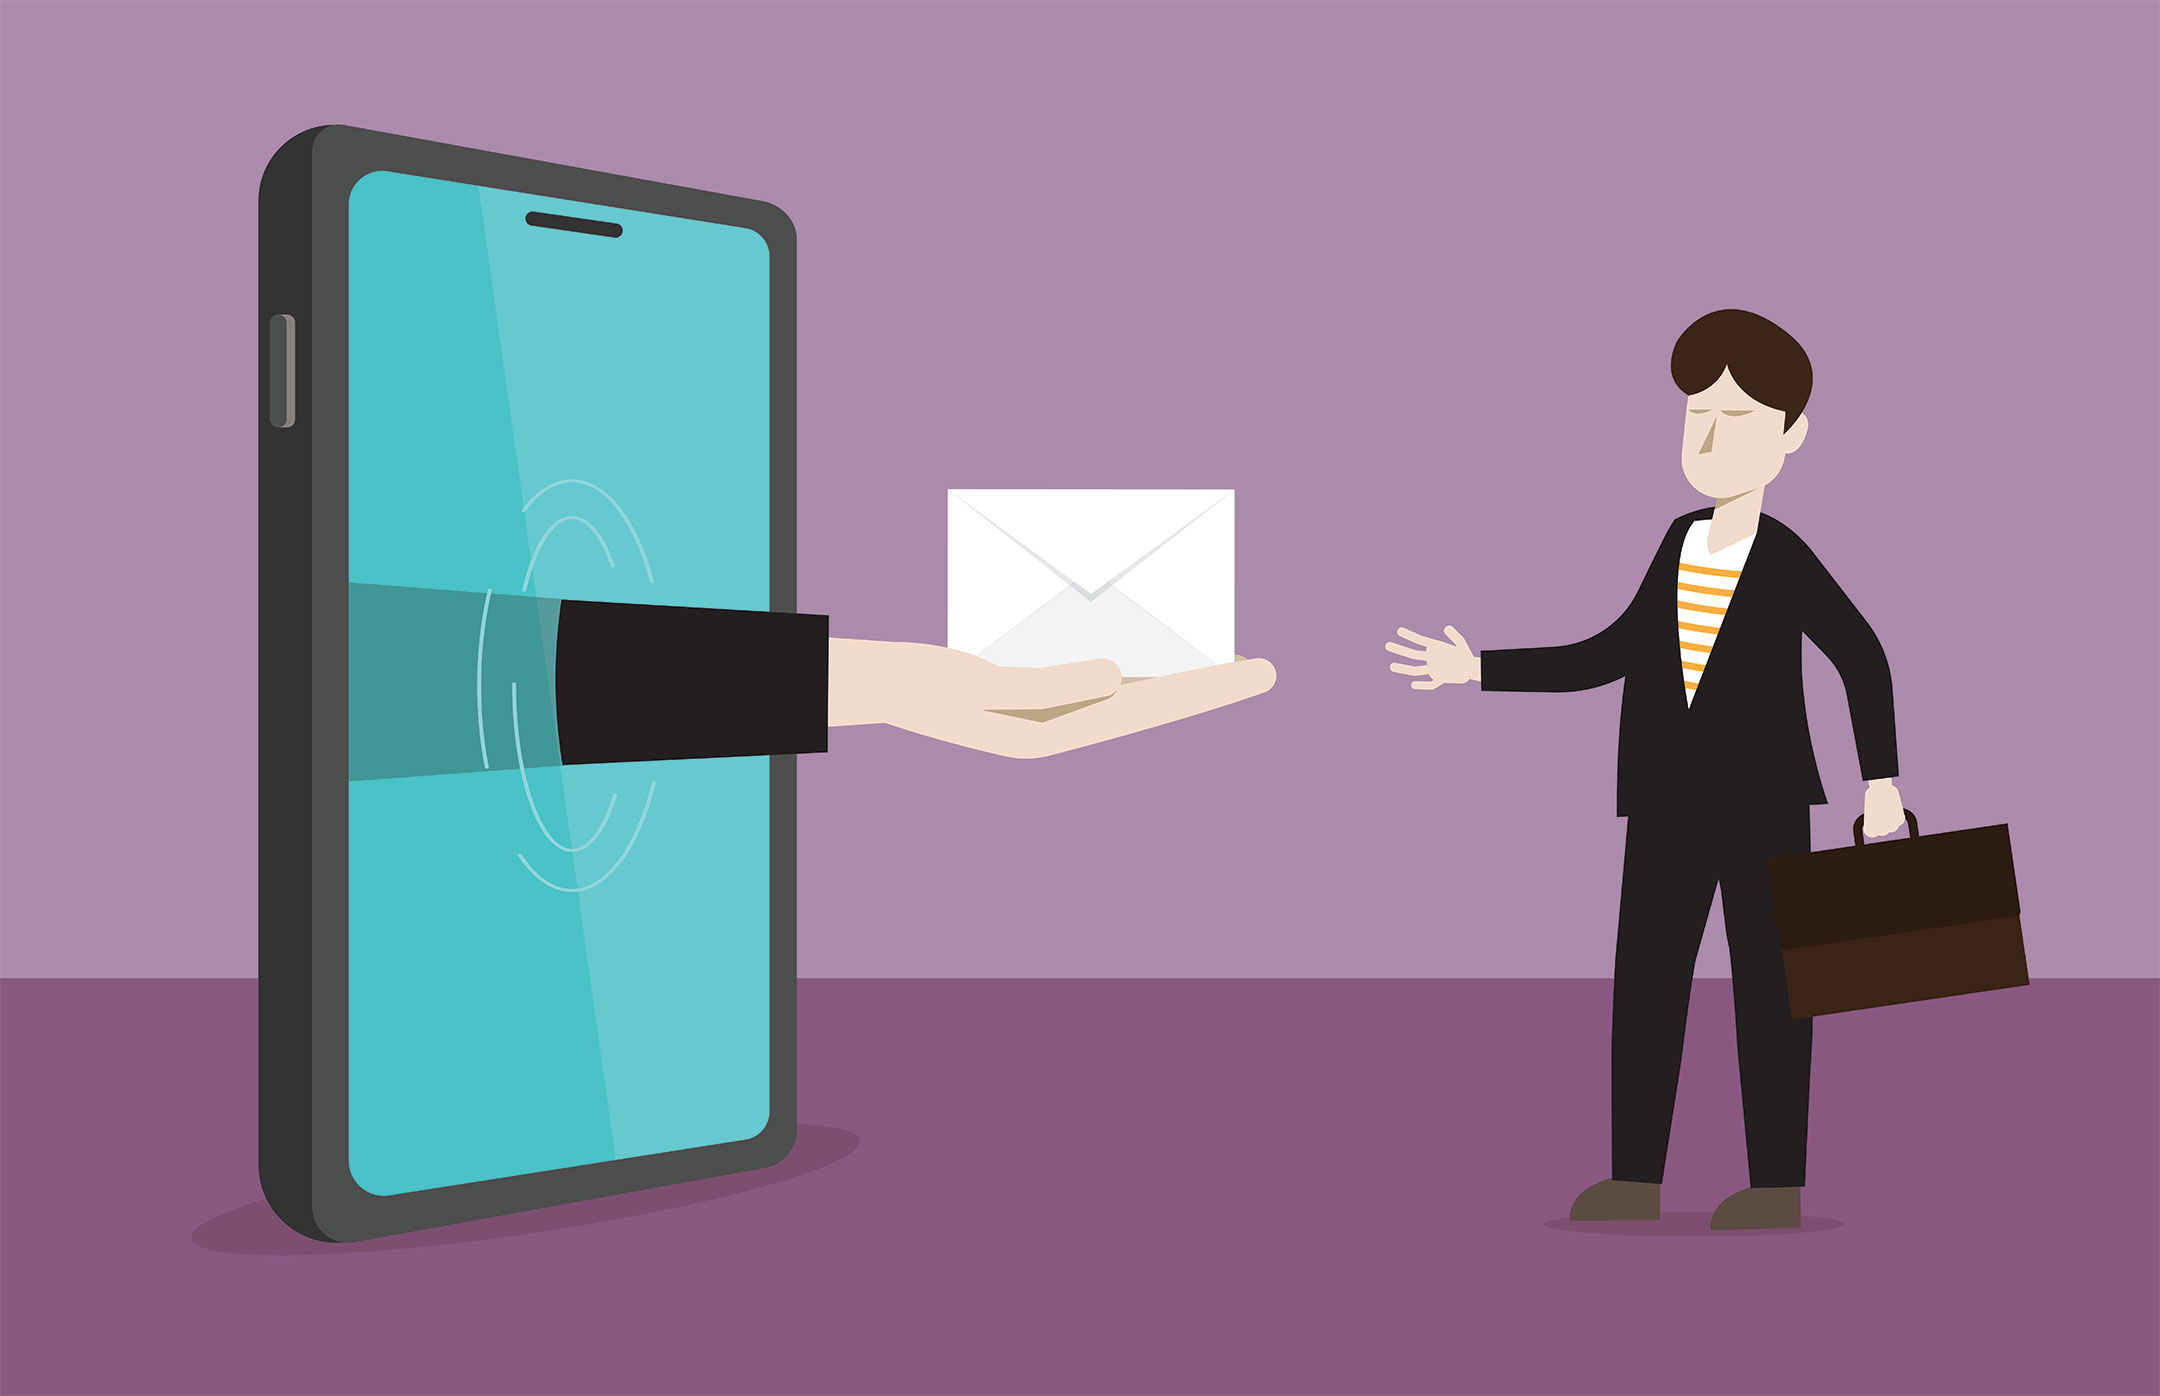 Illustration of a hand coming out of a large tablet screen holding an envelope for a cartoony man